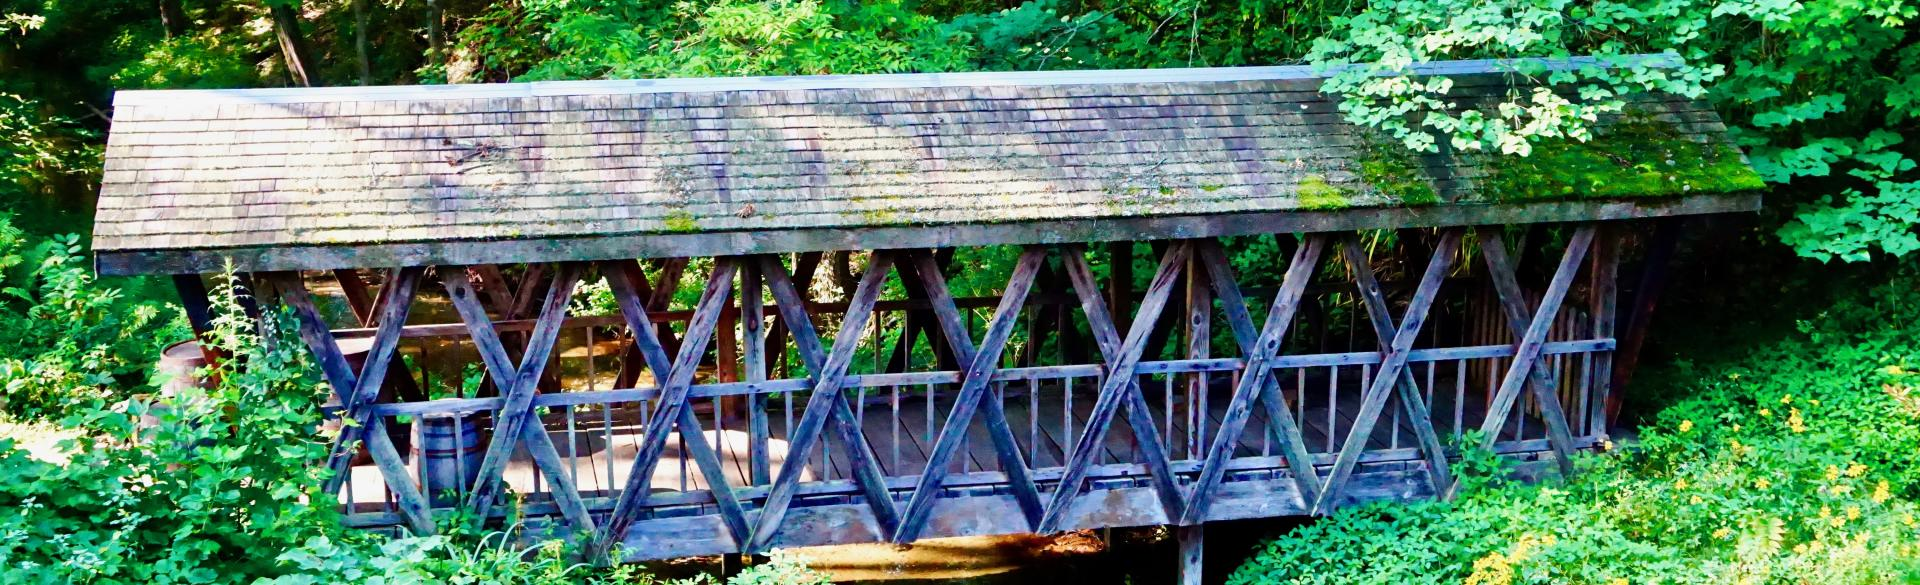 Bowens Mill Bridge